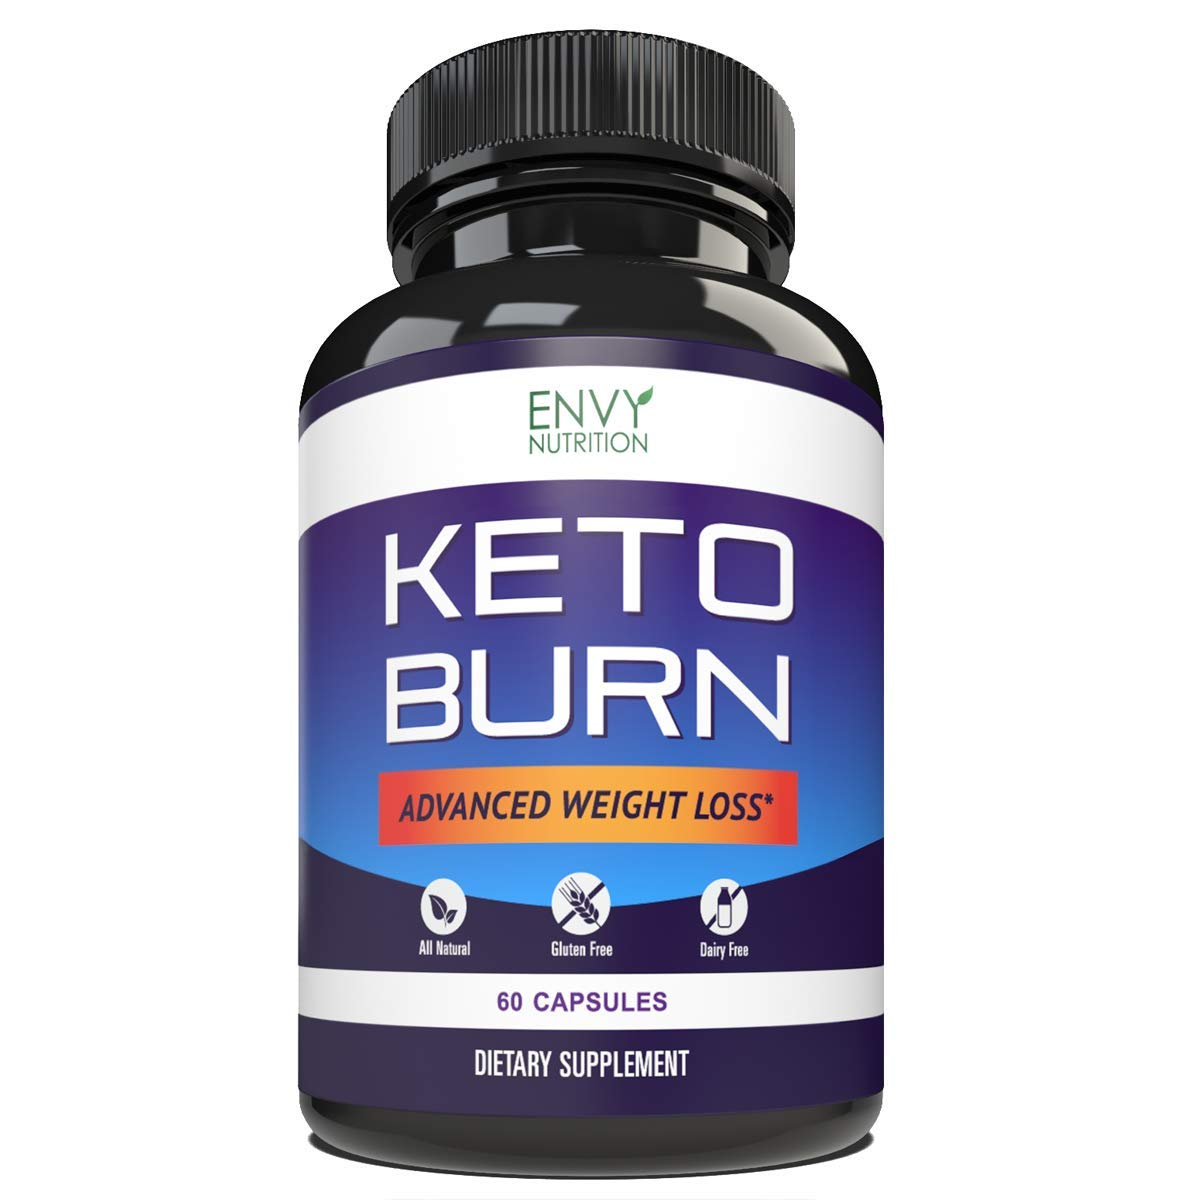 Keto Burn Diet Pills - Advanced Weight Loss for Men and Women - BHB Salts Support Fat Burning, Ketosis, Improved Energy and Enhanced Focus - 60 Count